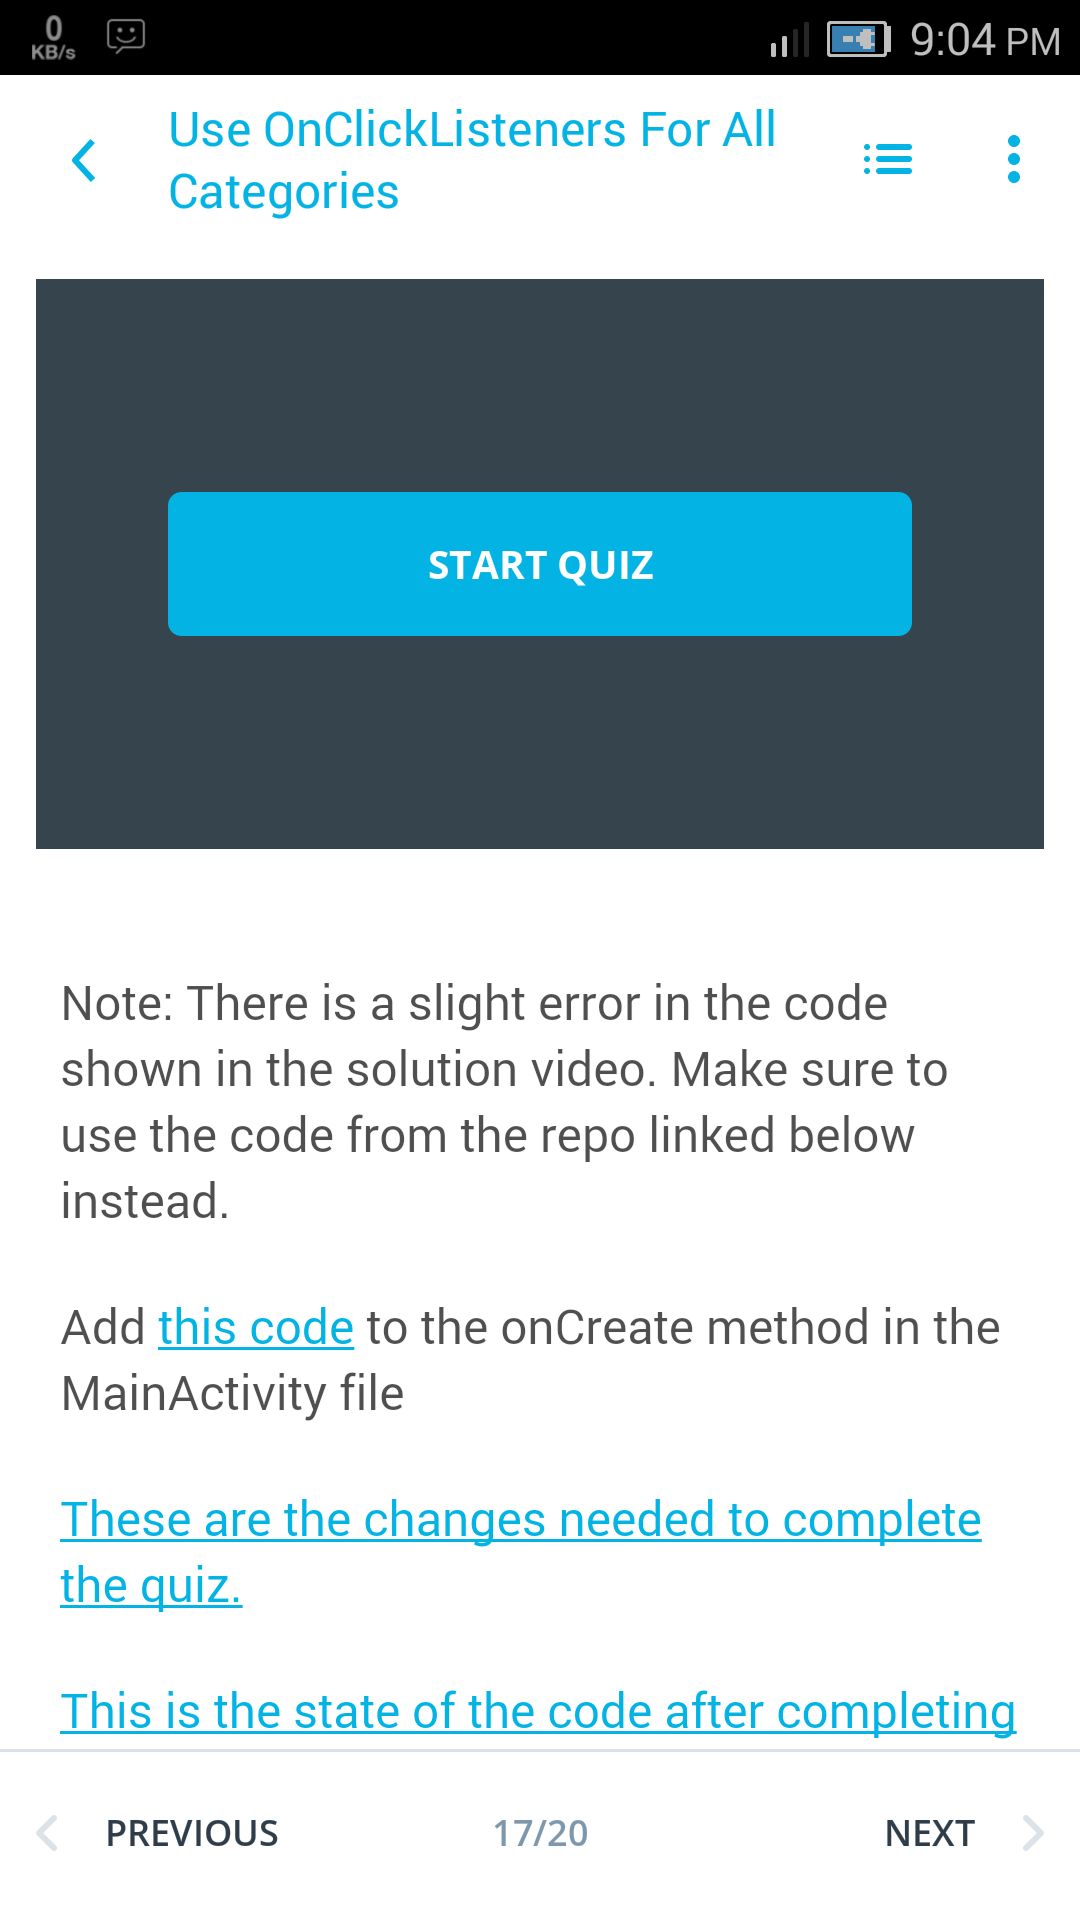 Everytime i am going to watch video using udacity android app in